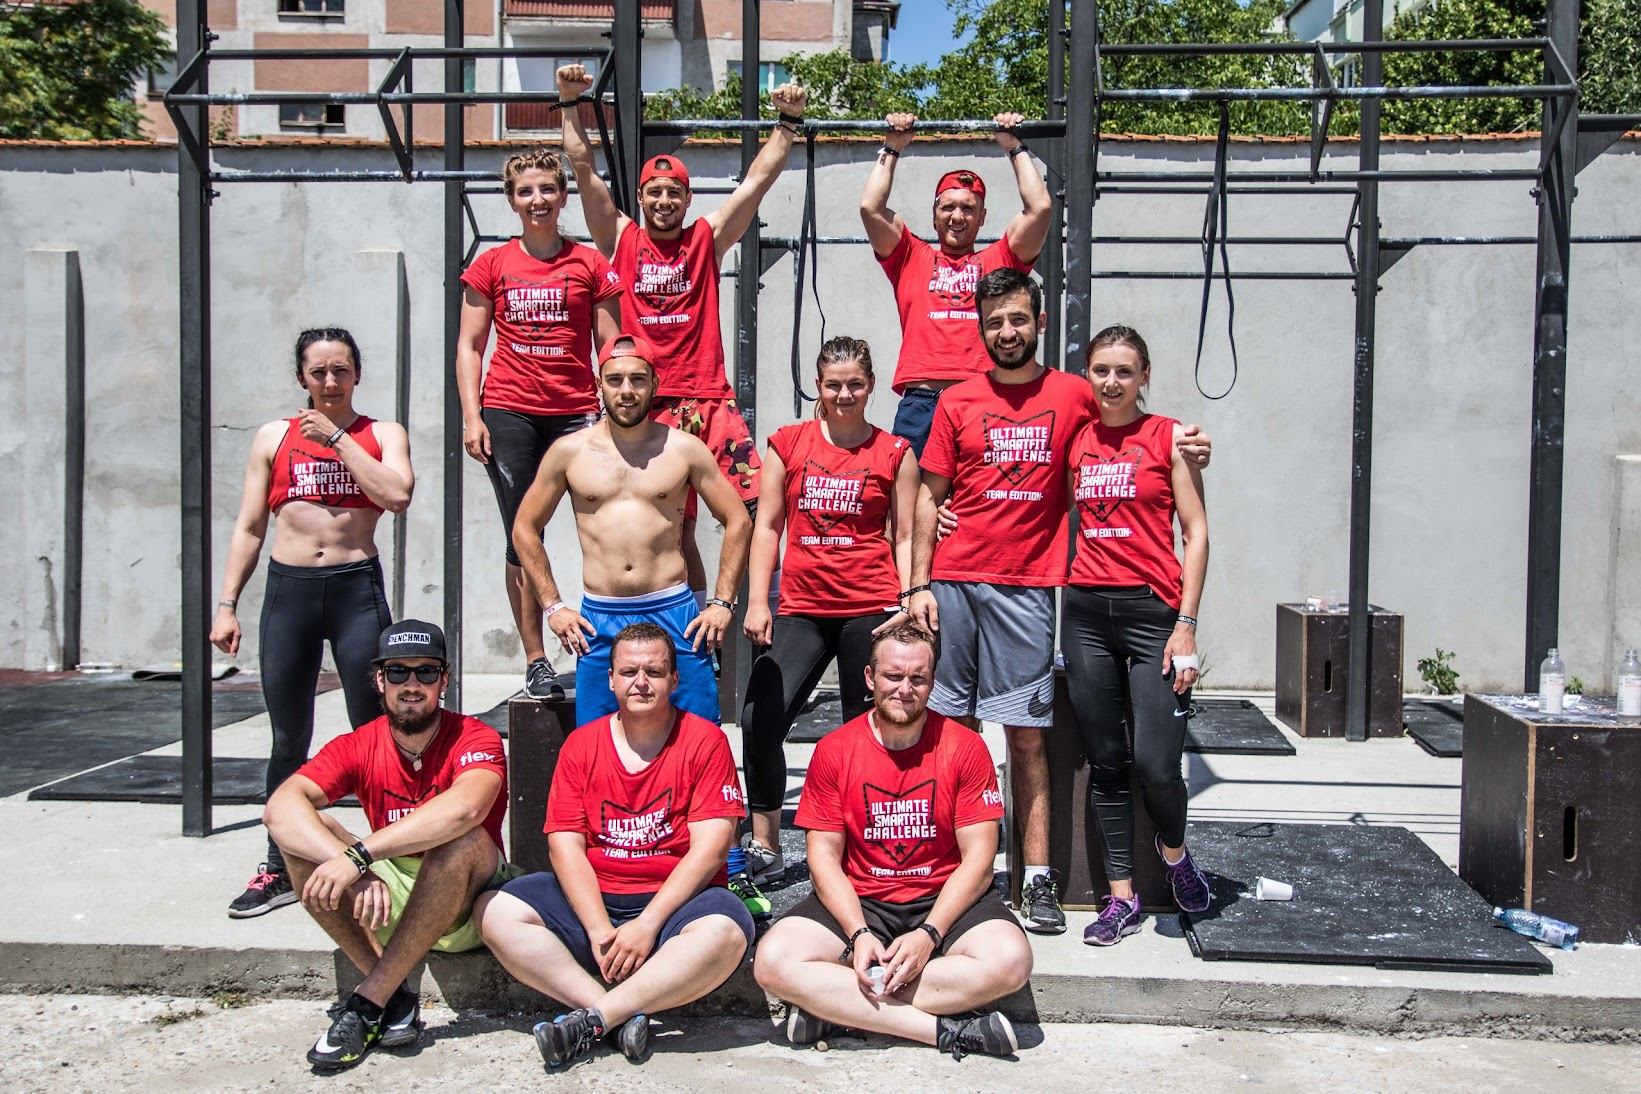 ultimate smartfit challenge team edition